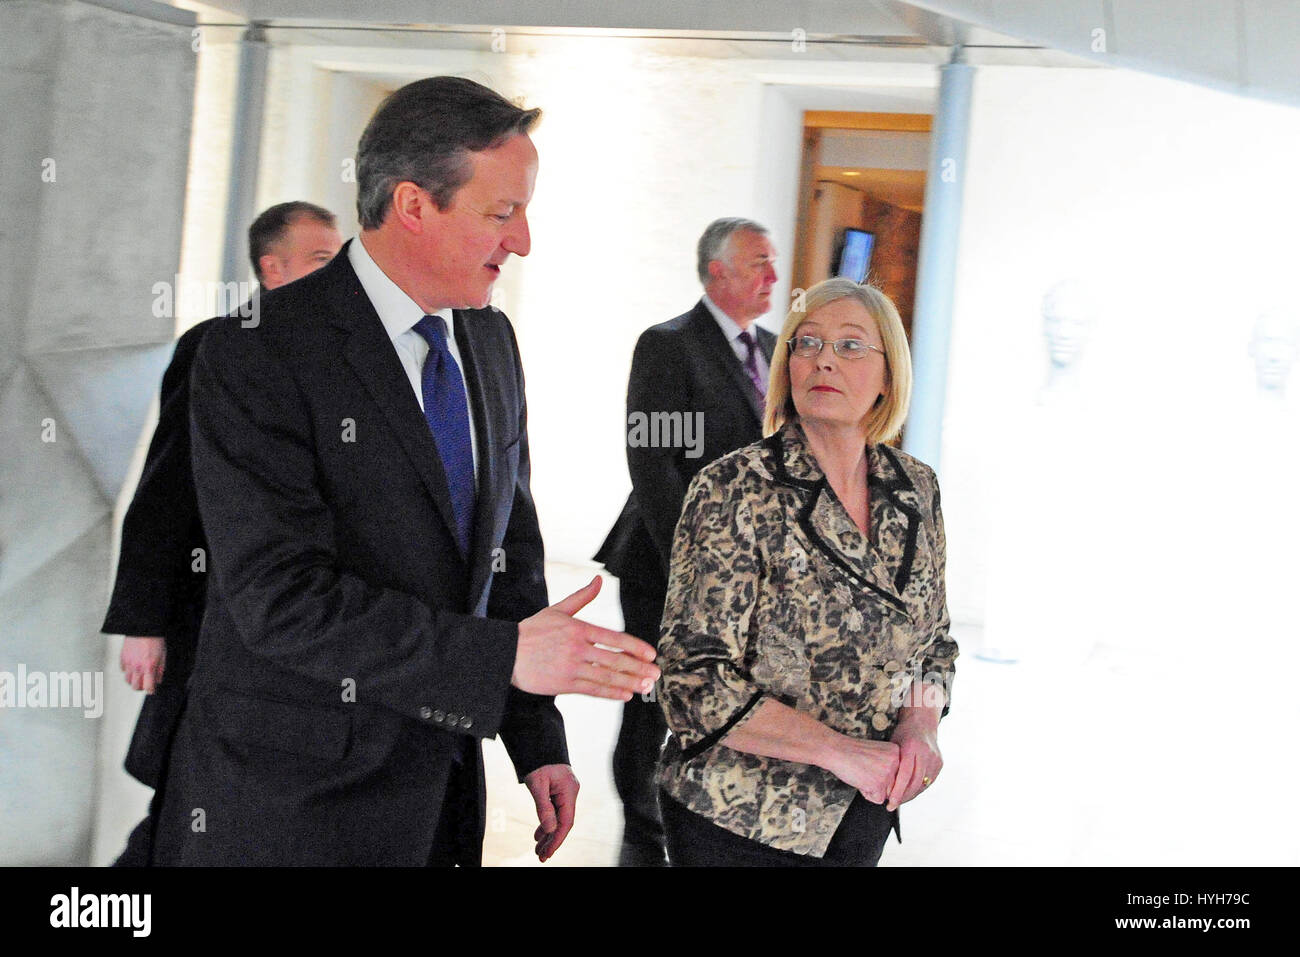 Prime Minister David Cameron in the Garden Lobby of the Scottish Parliament accompanied by the Presiding Officer - Stock Image